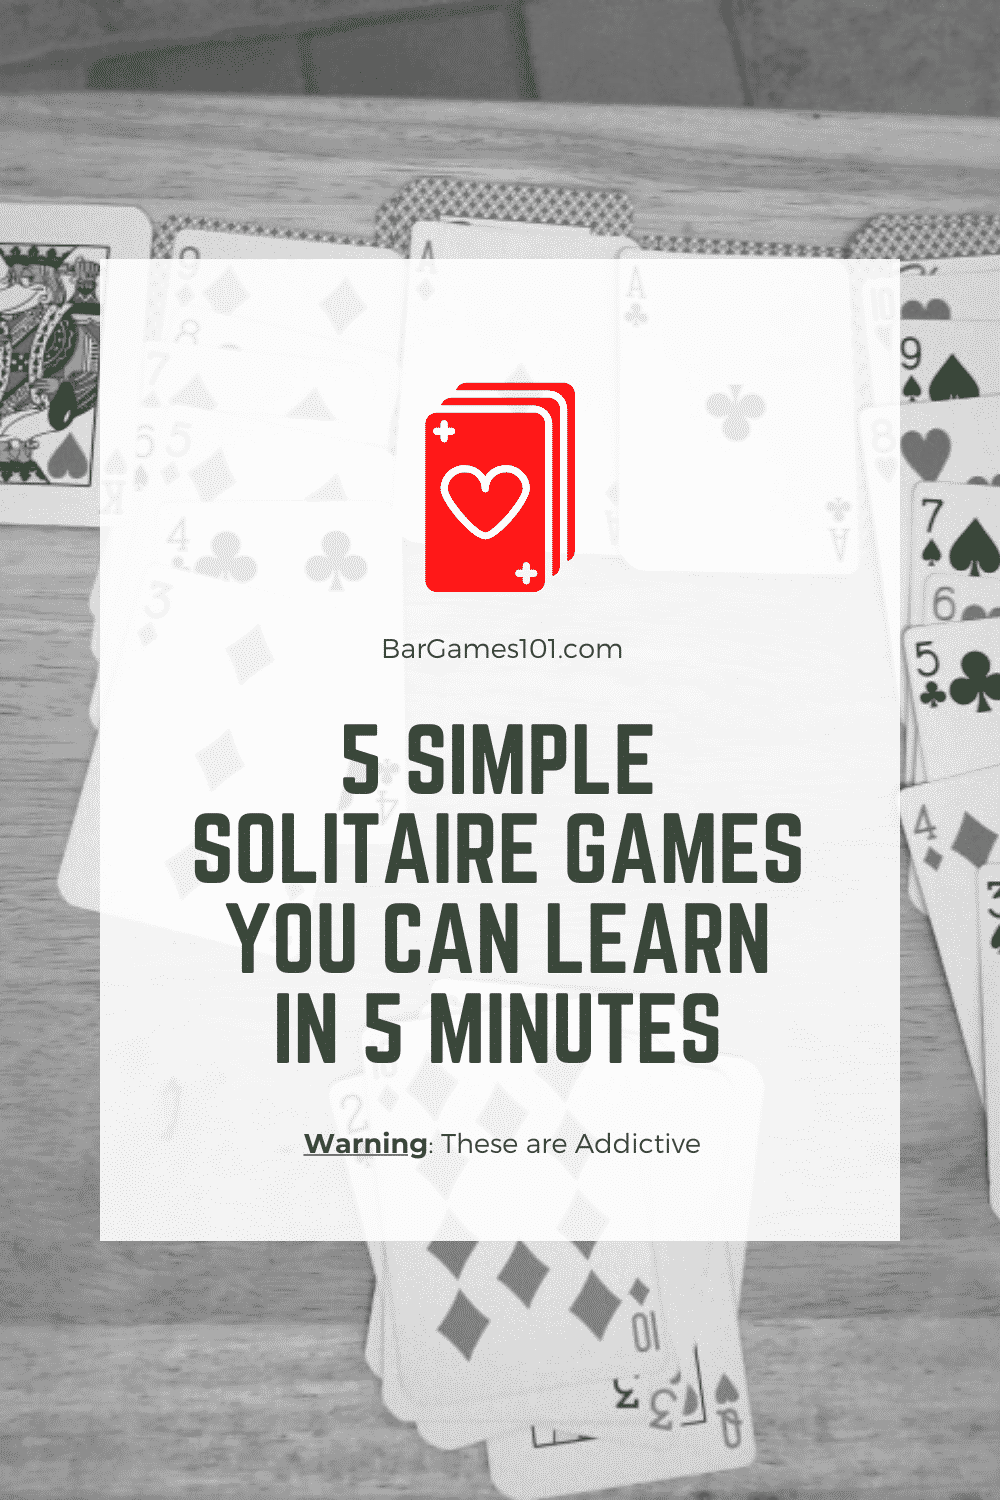 5 Simple Solitaire Games